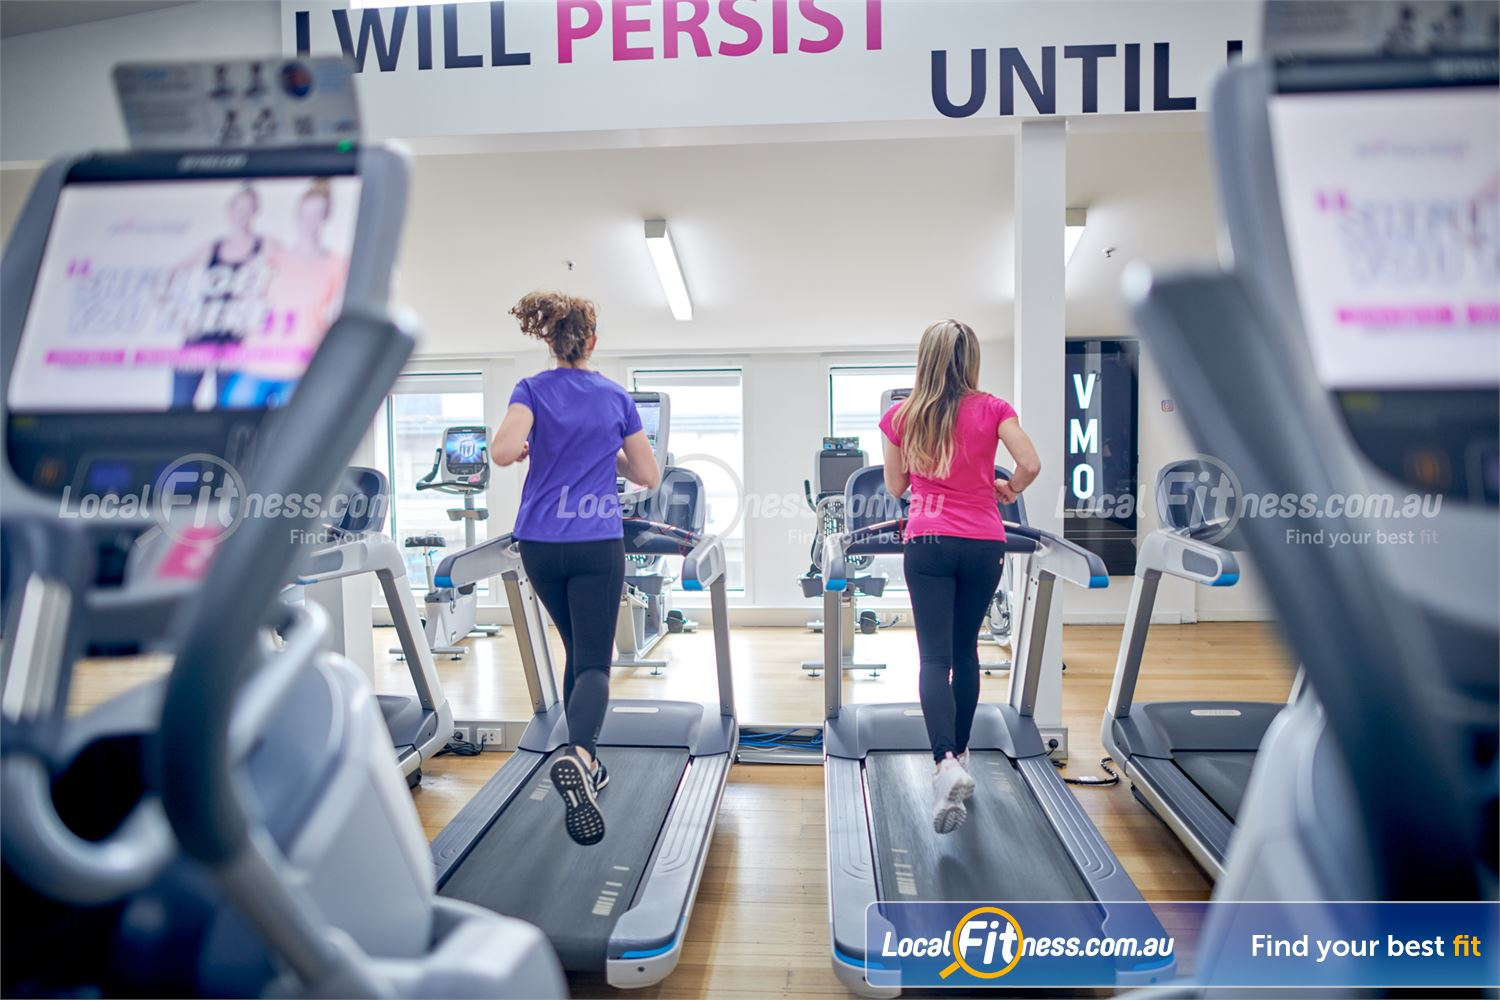 Fernwood Fitness Camberwell At Fernwood Camberwell, we provide 24-hour gym access to our cardio area.